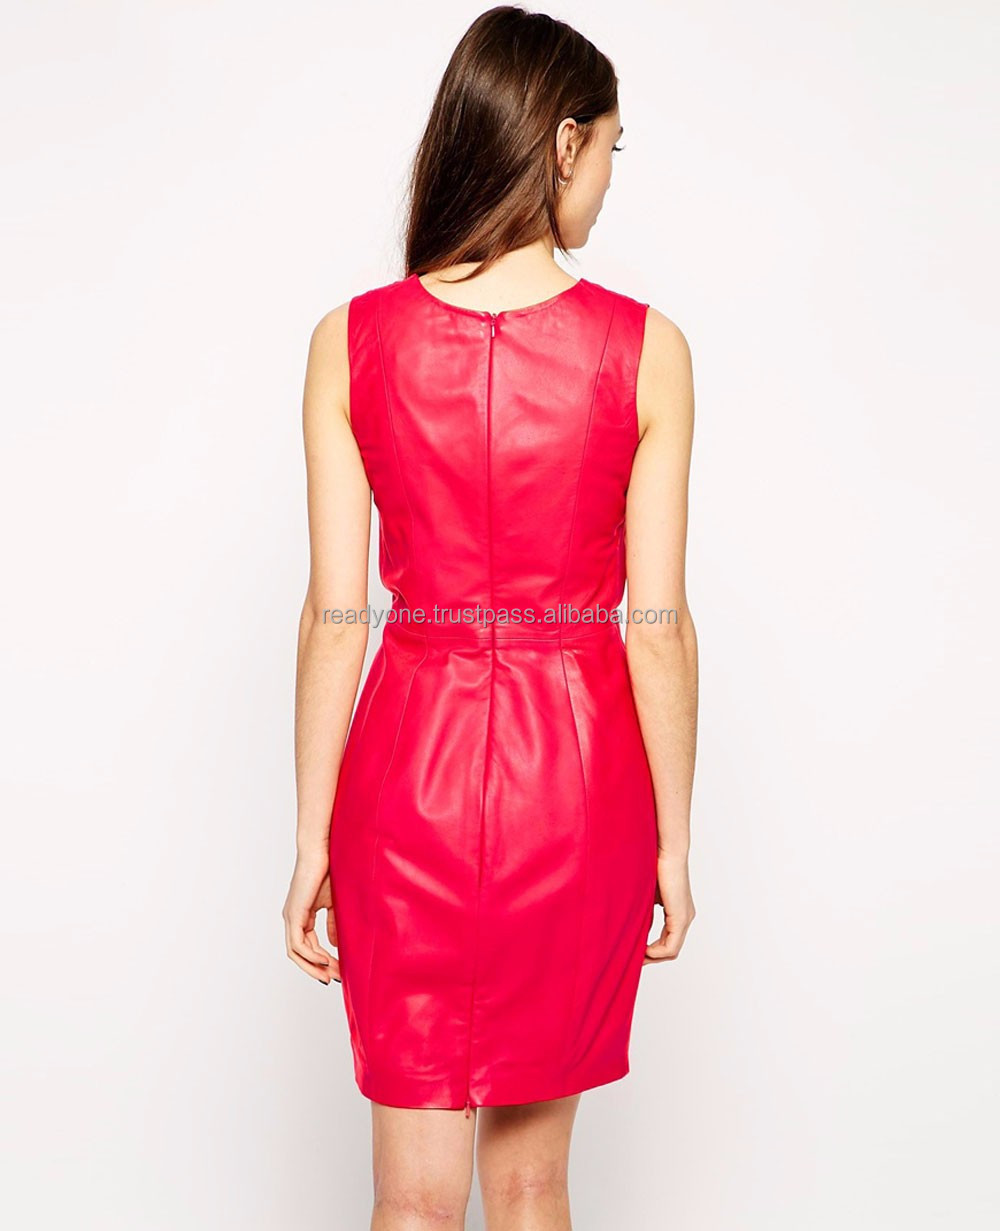 Sexy Summer A-line Cut-out Wool and Leather Casual Dress